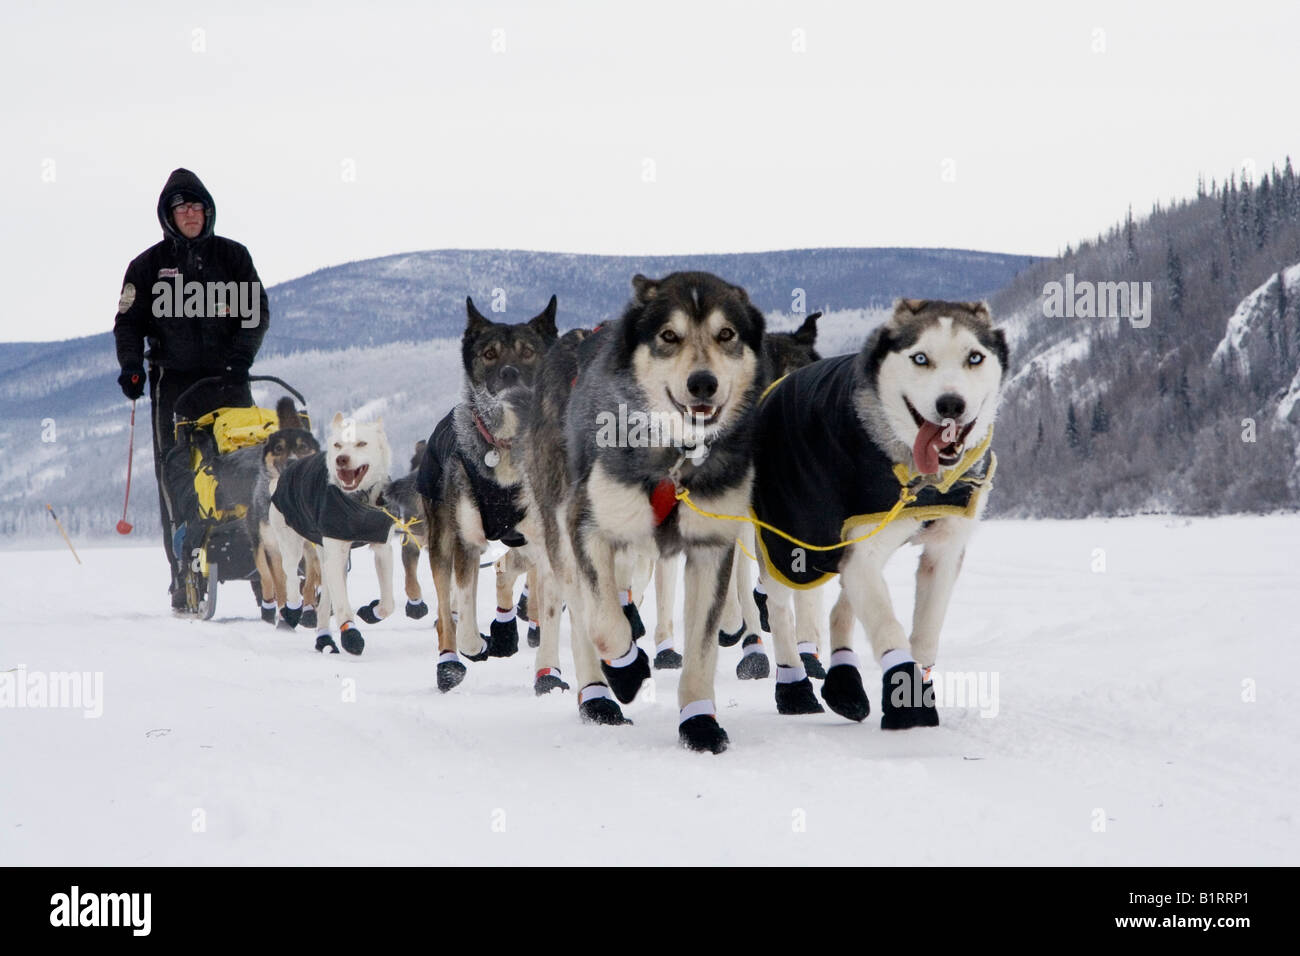 Yukon Quest Sled Dog Race musher Brent Sass, leaving Dawson City, with his dog team on the frozen Yukon River, Yukon - Stock Image